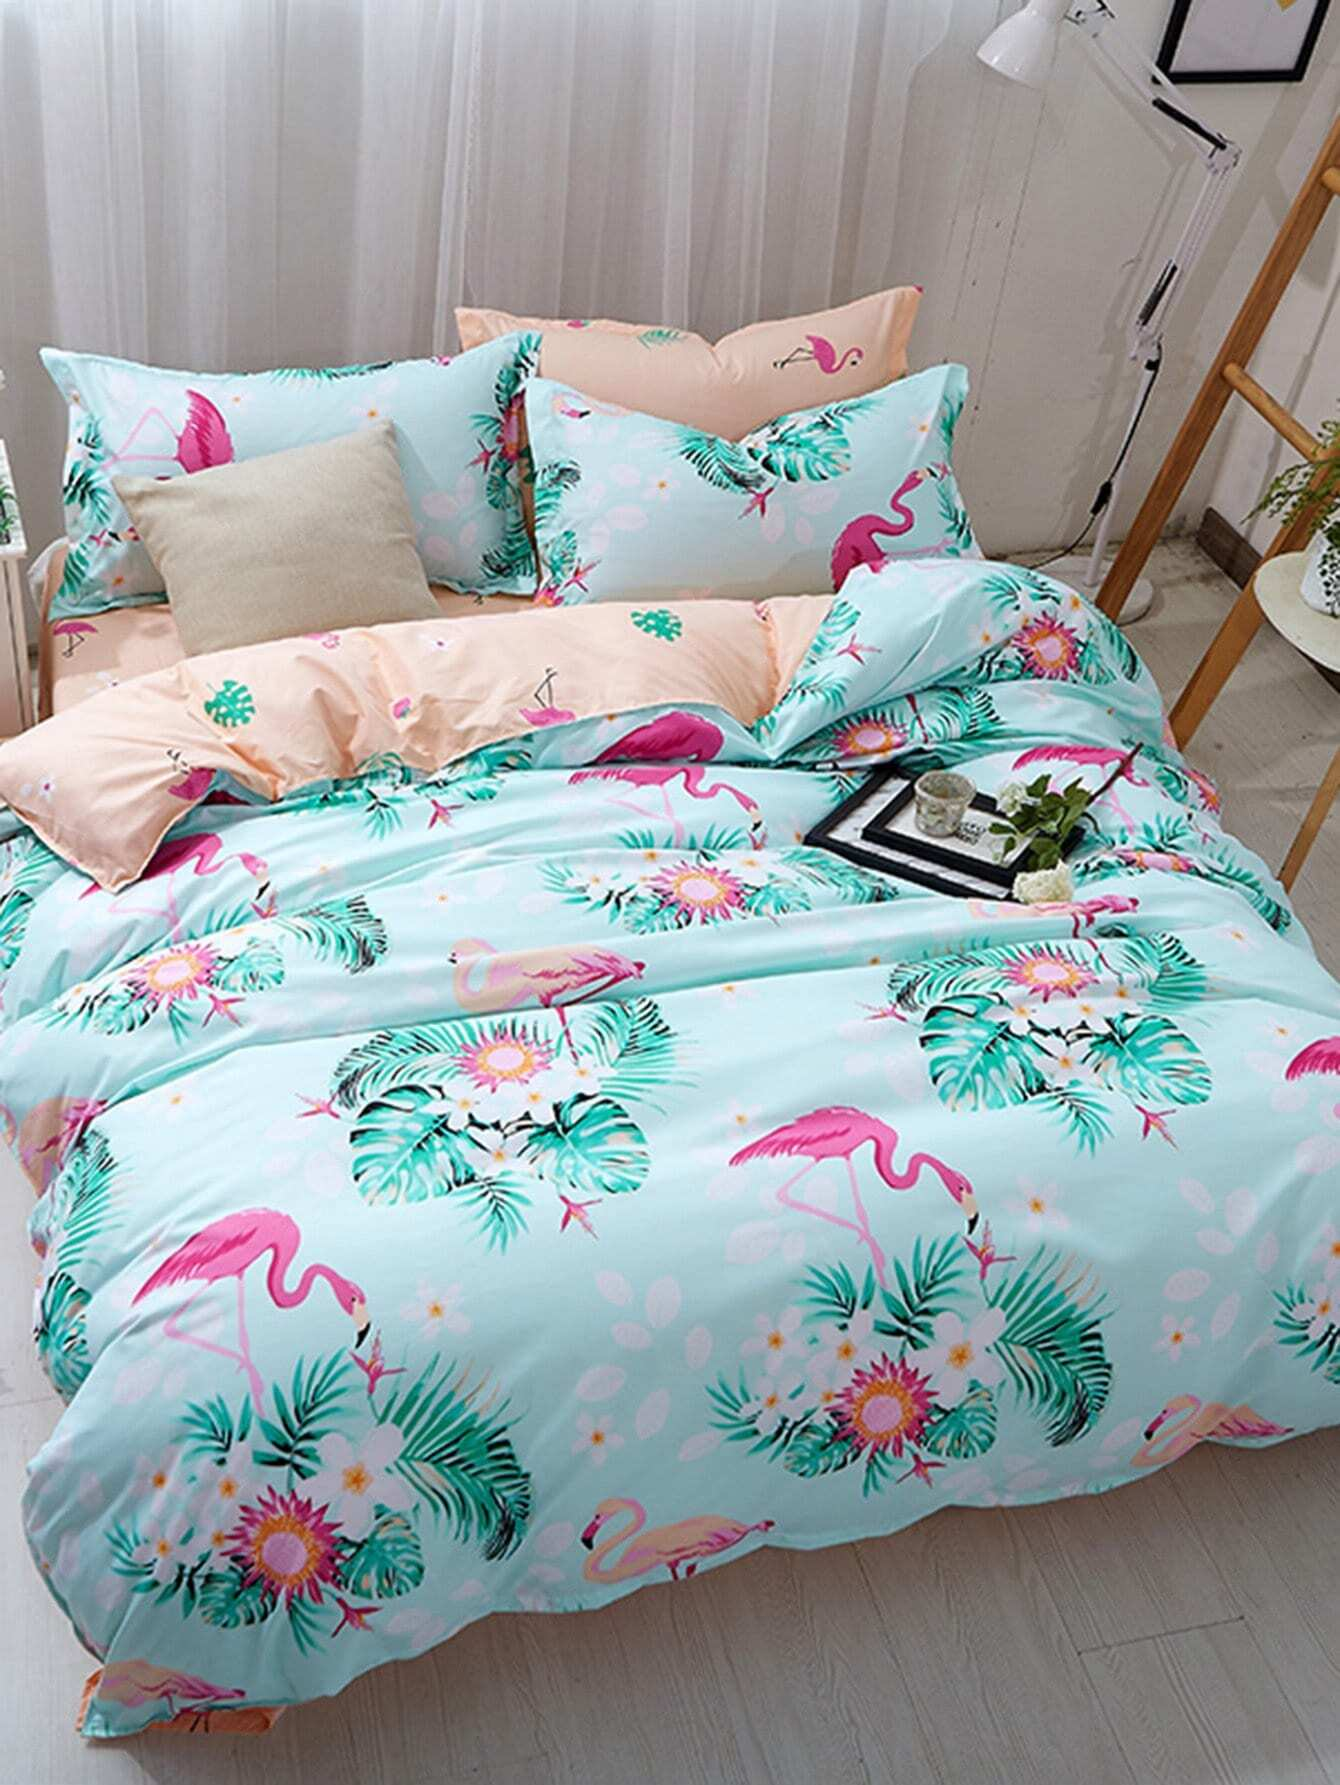 Flamingo & Letter Print Bedding Set letter print two tone bedding set